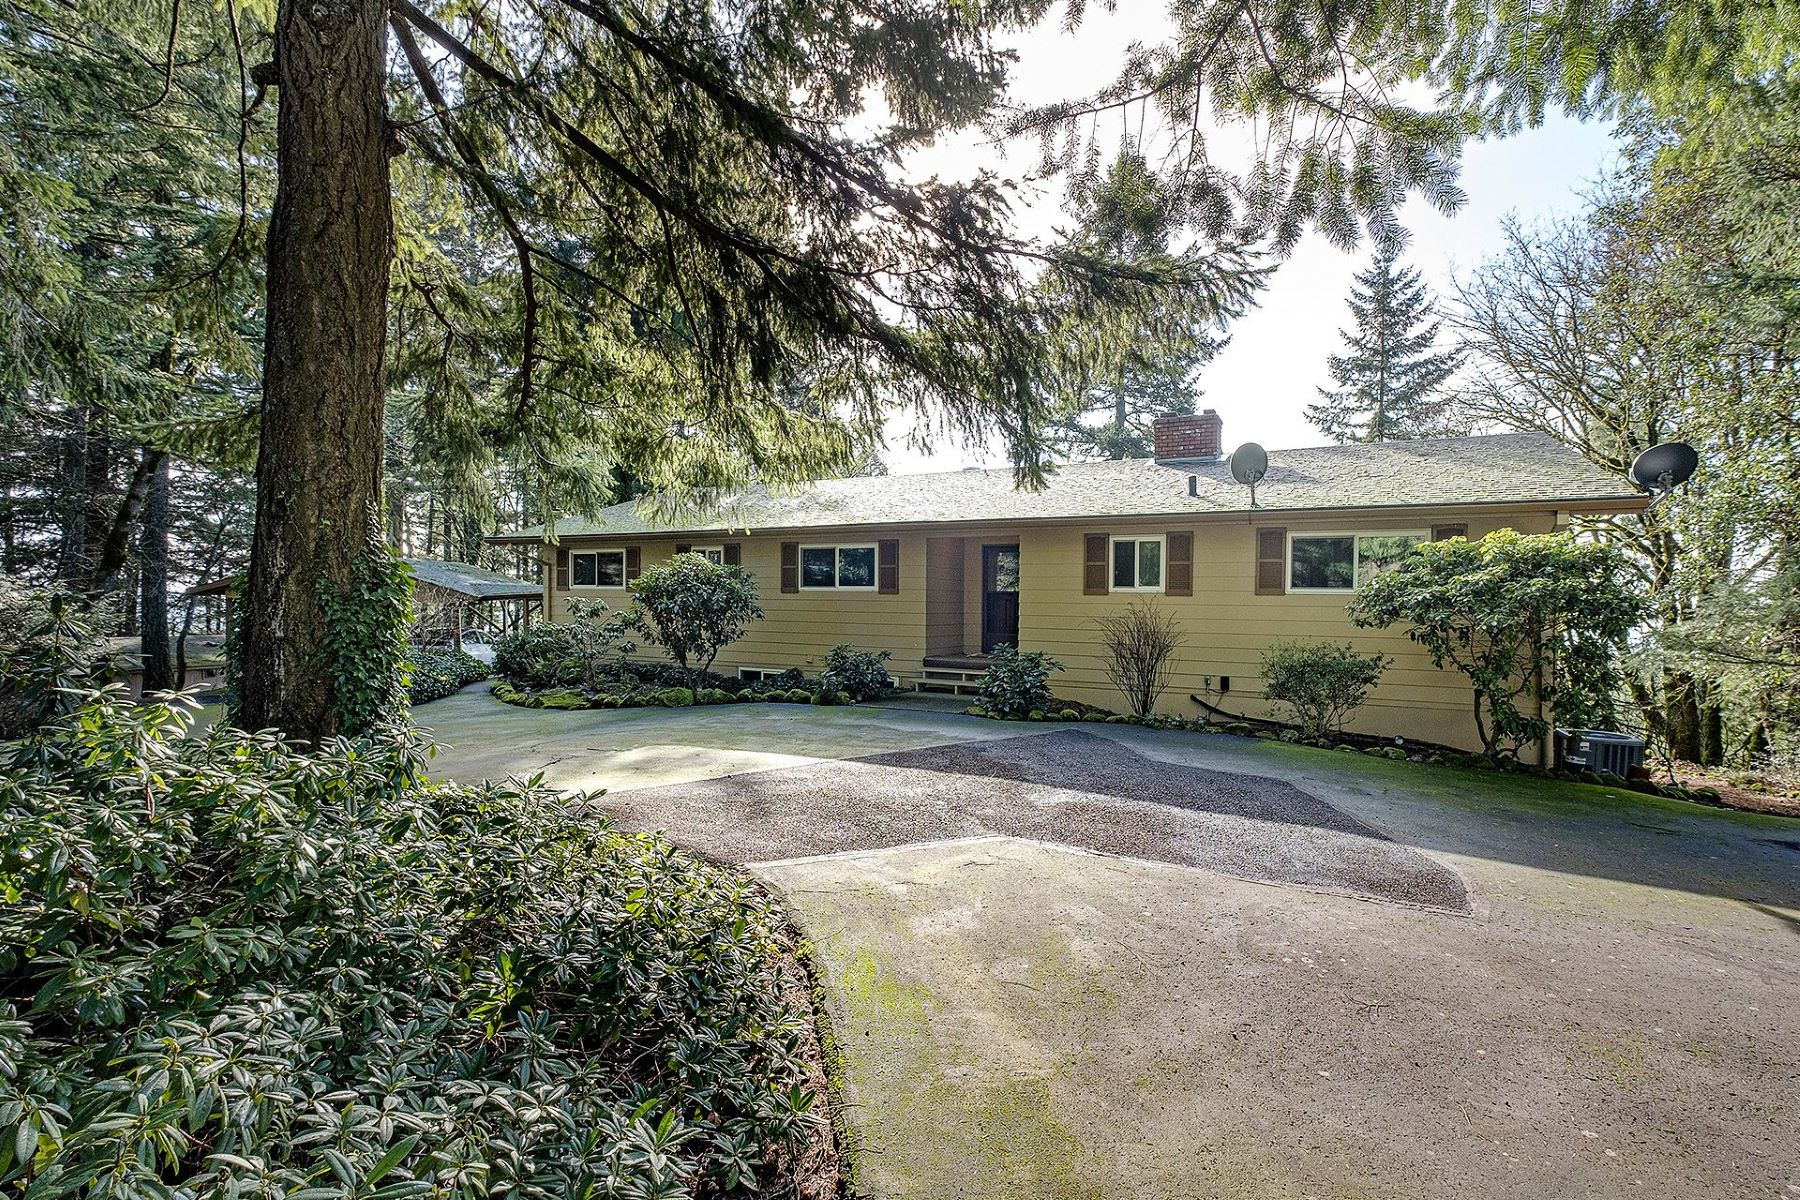 Other Residential Homes for Active at 17400 NE HILLSBORO HWY Newberg, OR 97132 17400 NE HILLSBORO HWY Newberg, Oregon 97132 United States